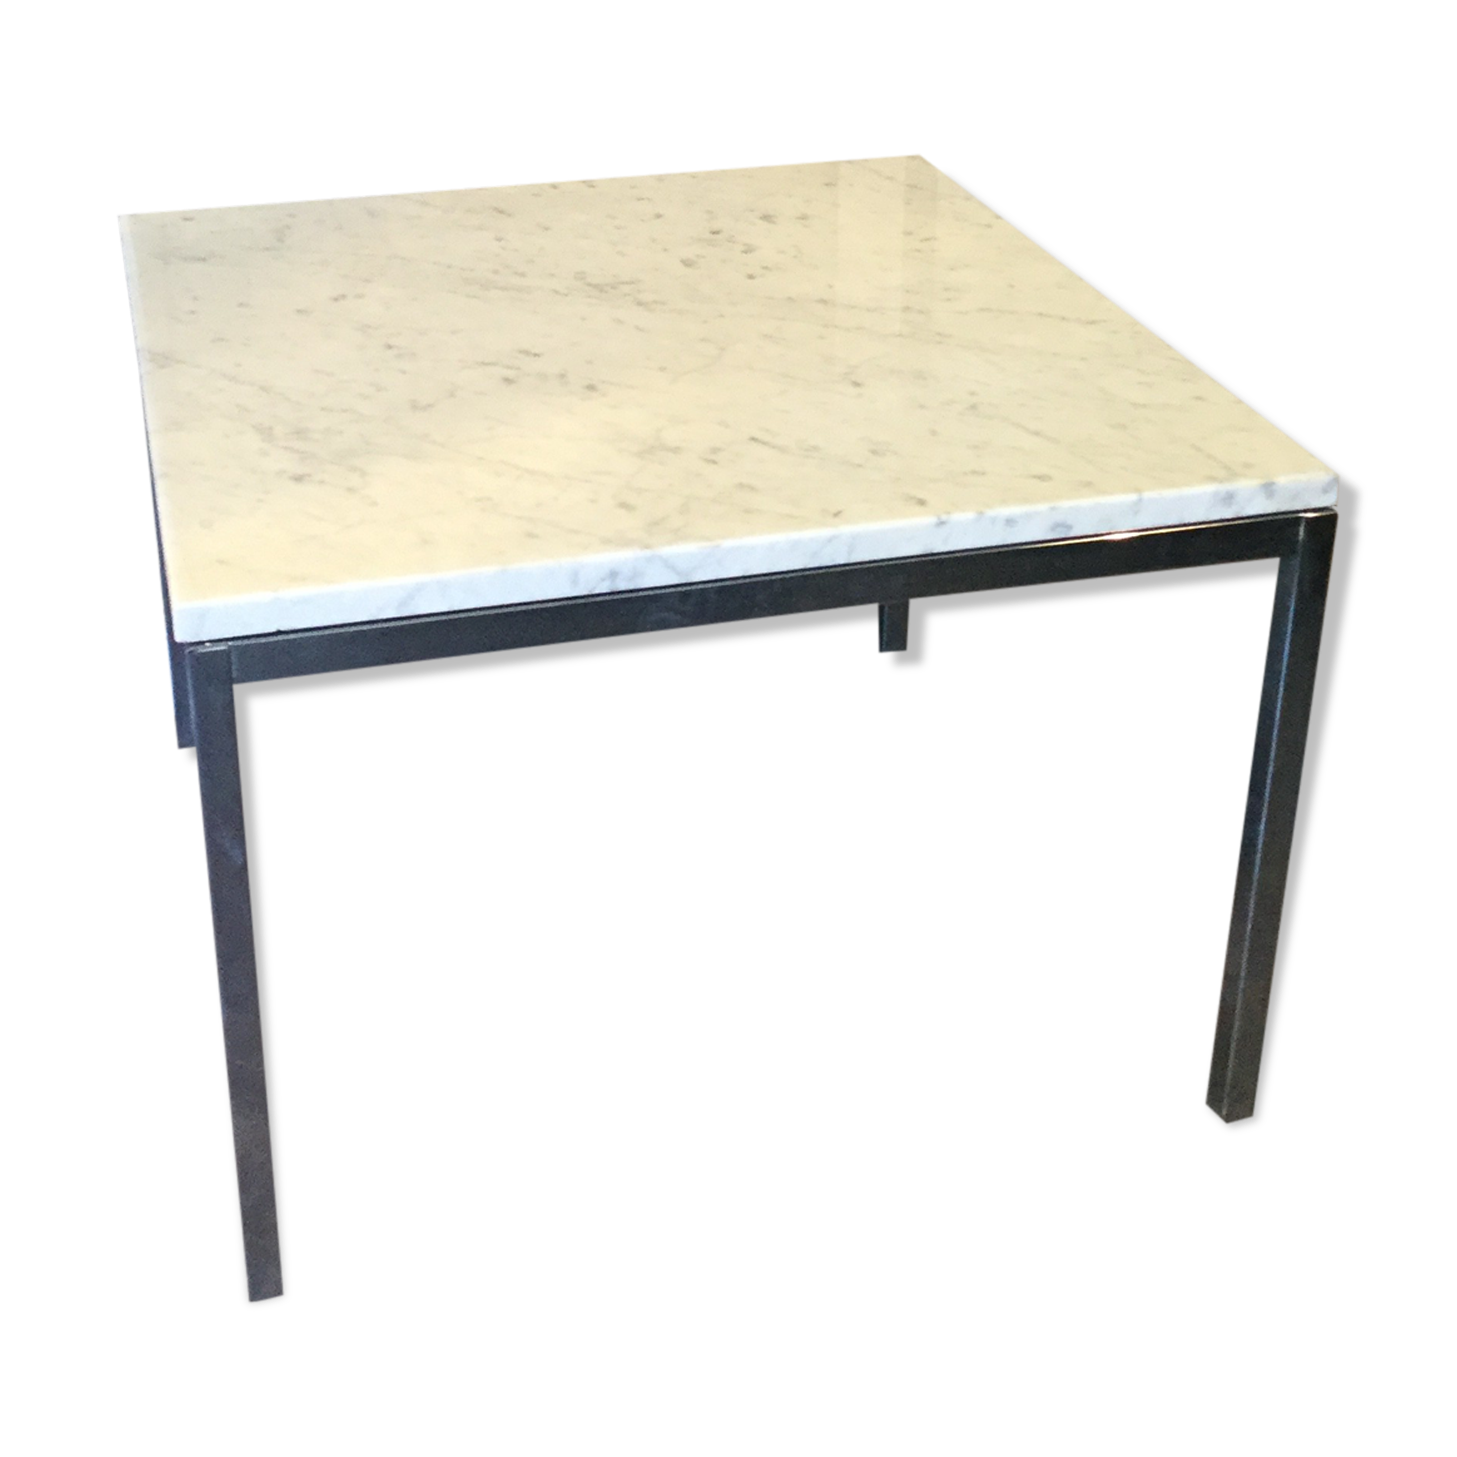 Table knoll marbre latest knoll table basse et table duappoint krusin marbr blanc with table - Table knoll ovale marbre blanc ...